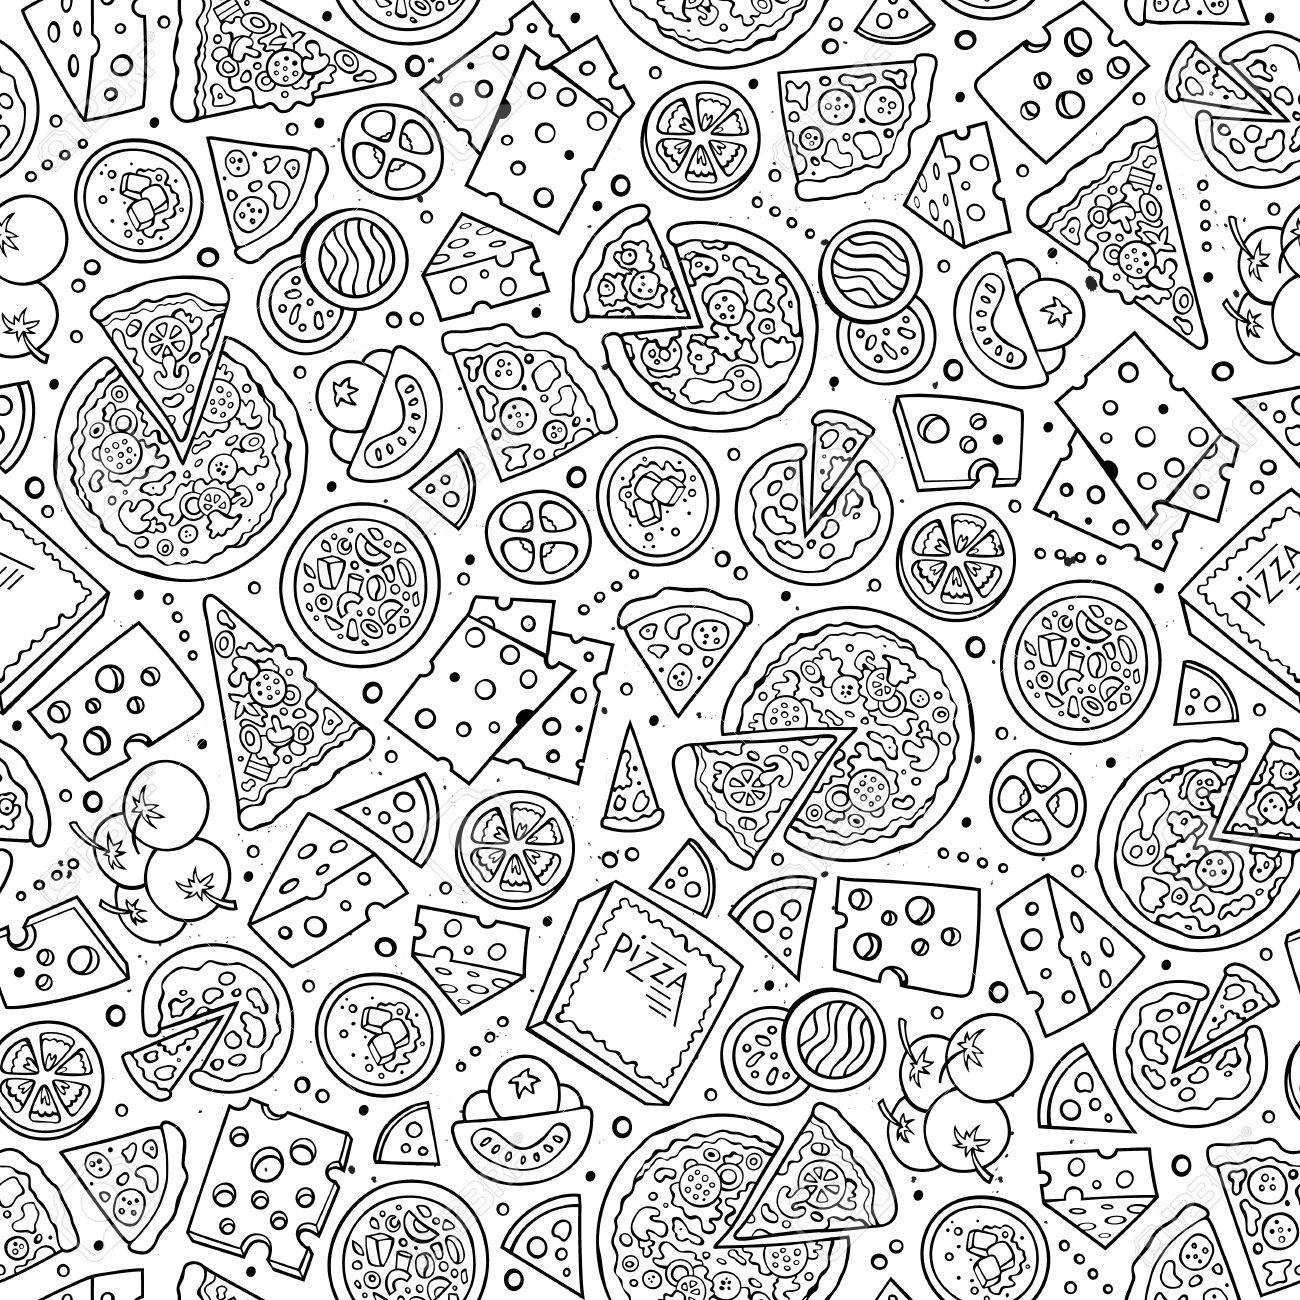 Cartoon cute hand drawn Pizza seamless pattern. Line art with lots of objects background. Endless funny vector illustration. Sketch backdrop with fastfood symbols and items - 63236480